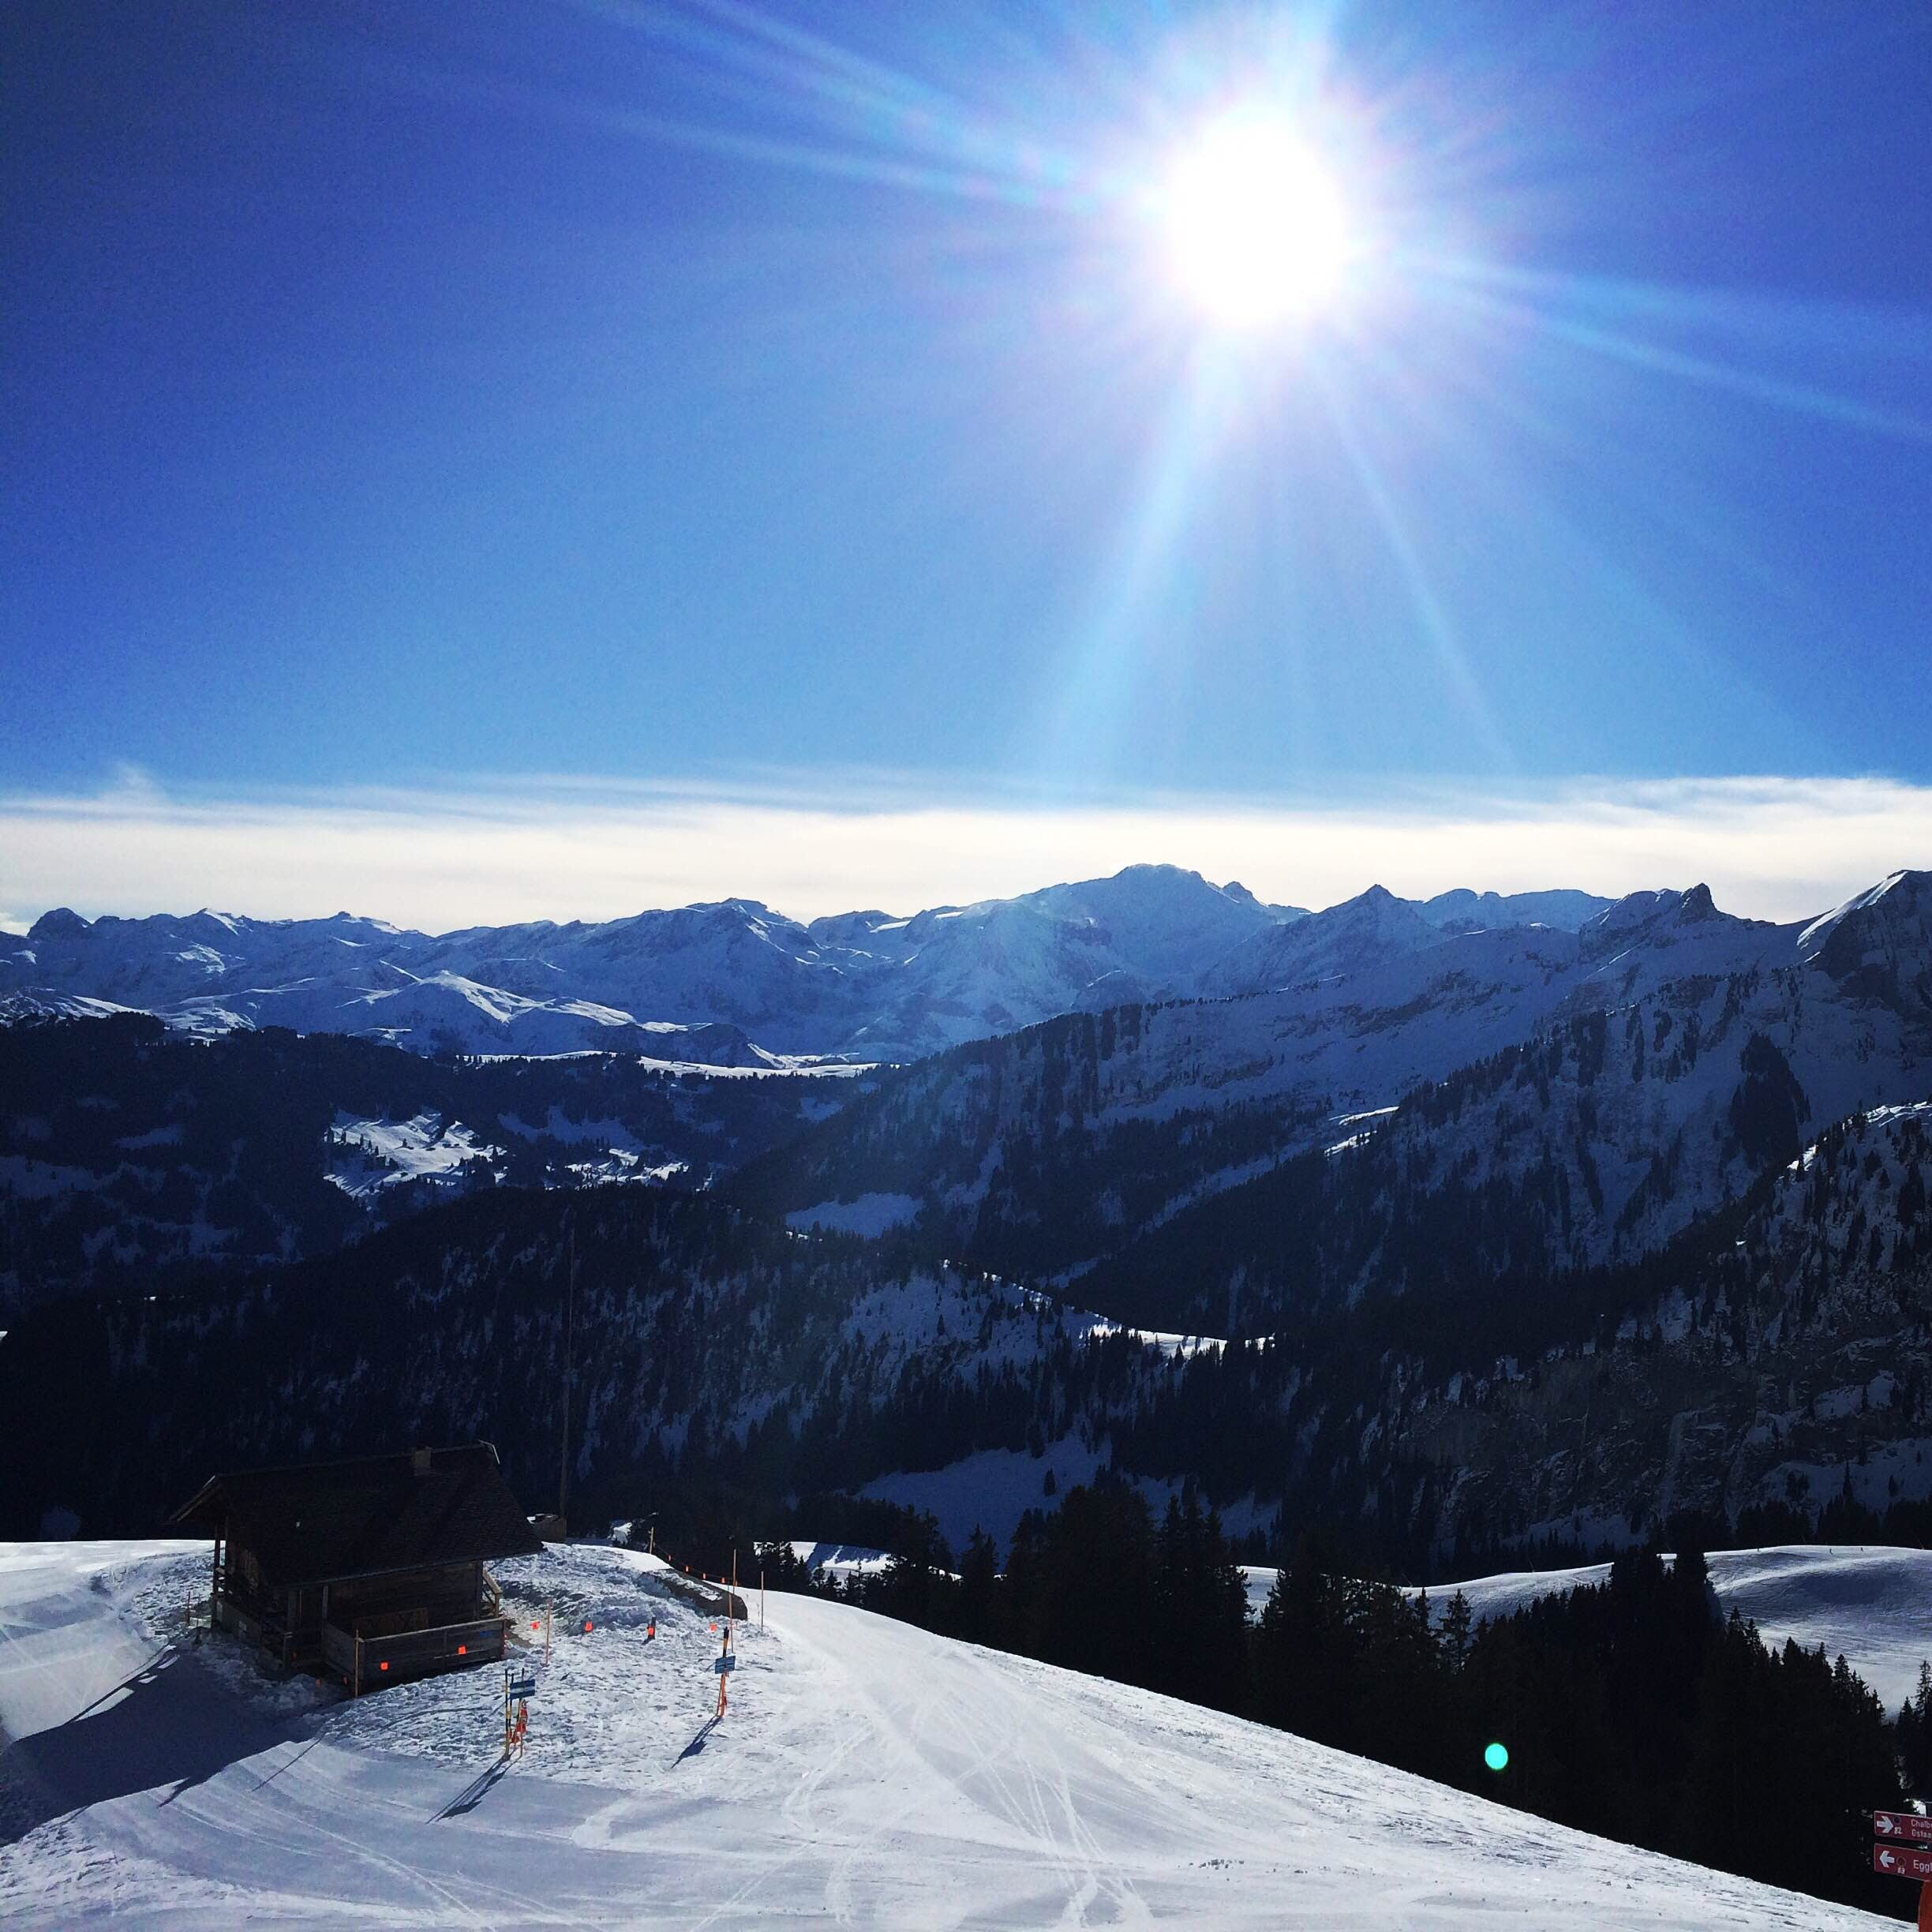 A view on a snowy mountain resort with the sun high in the sky